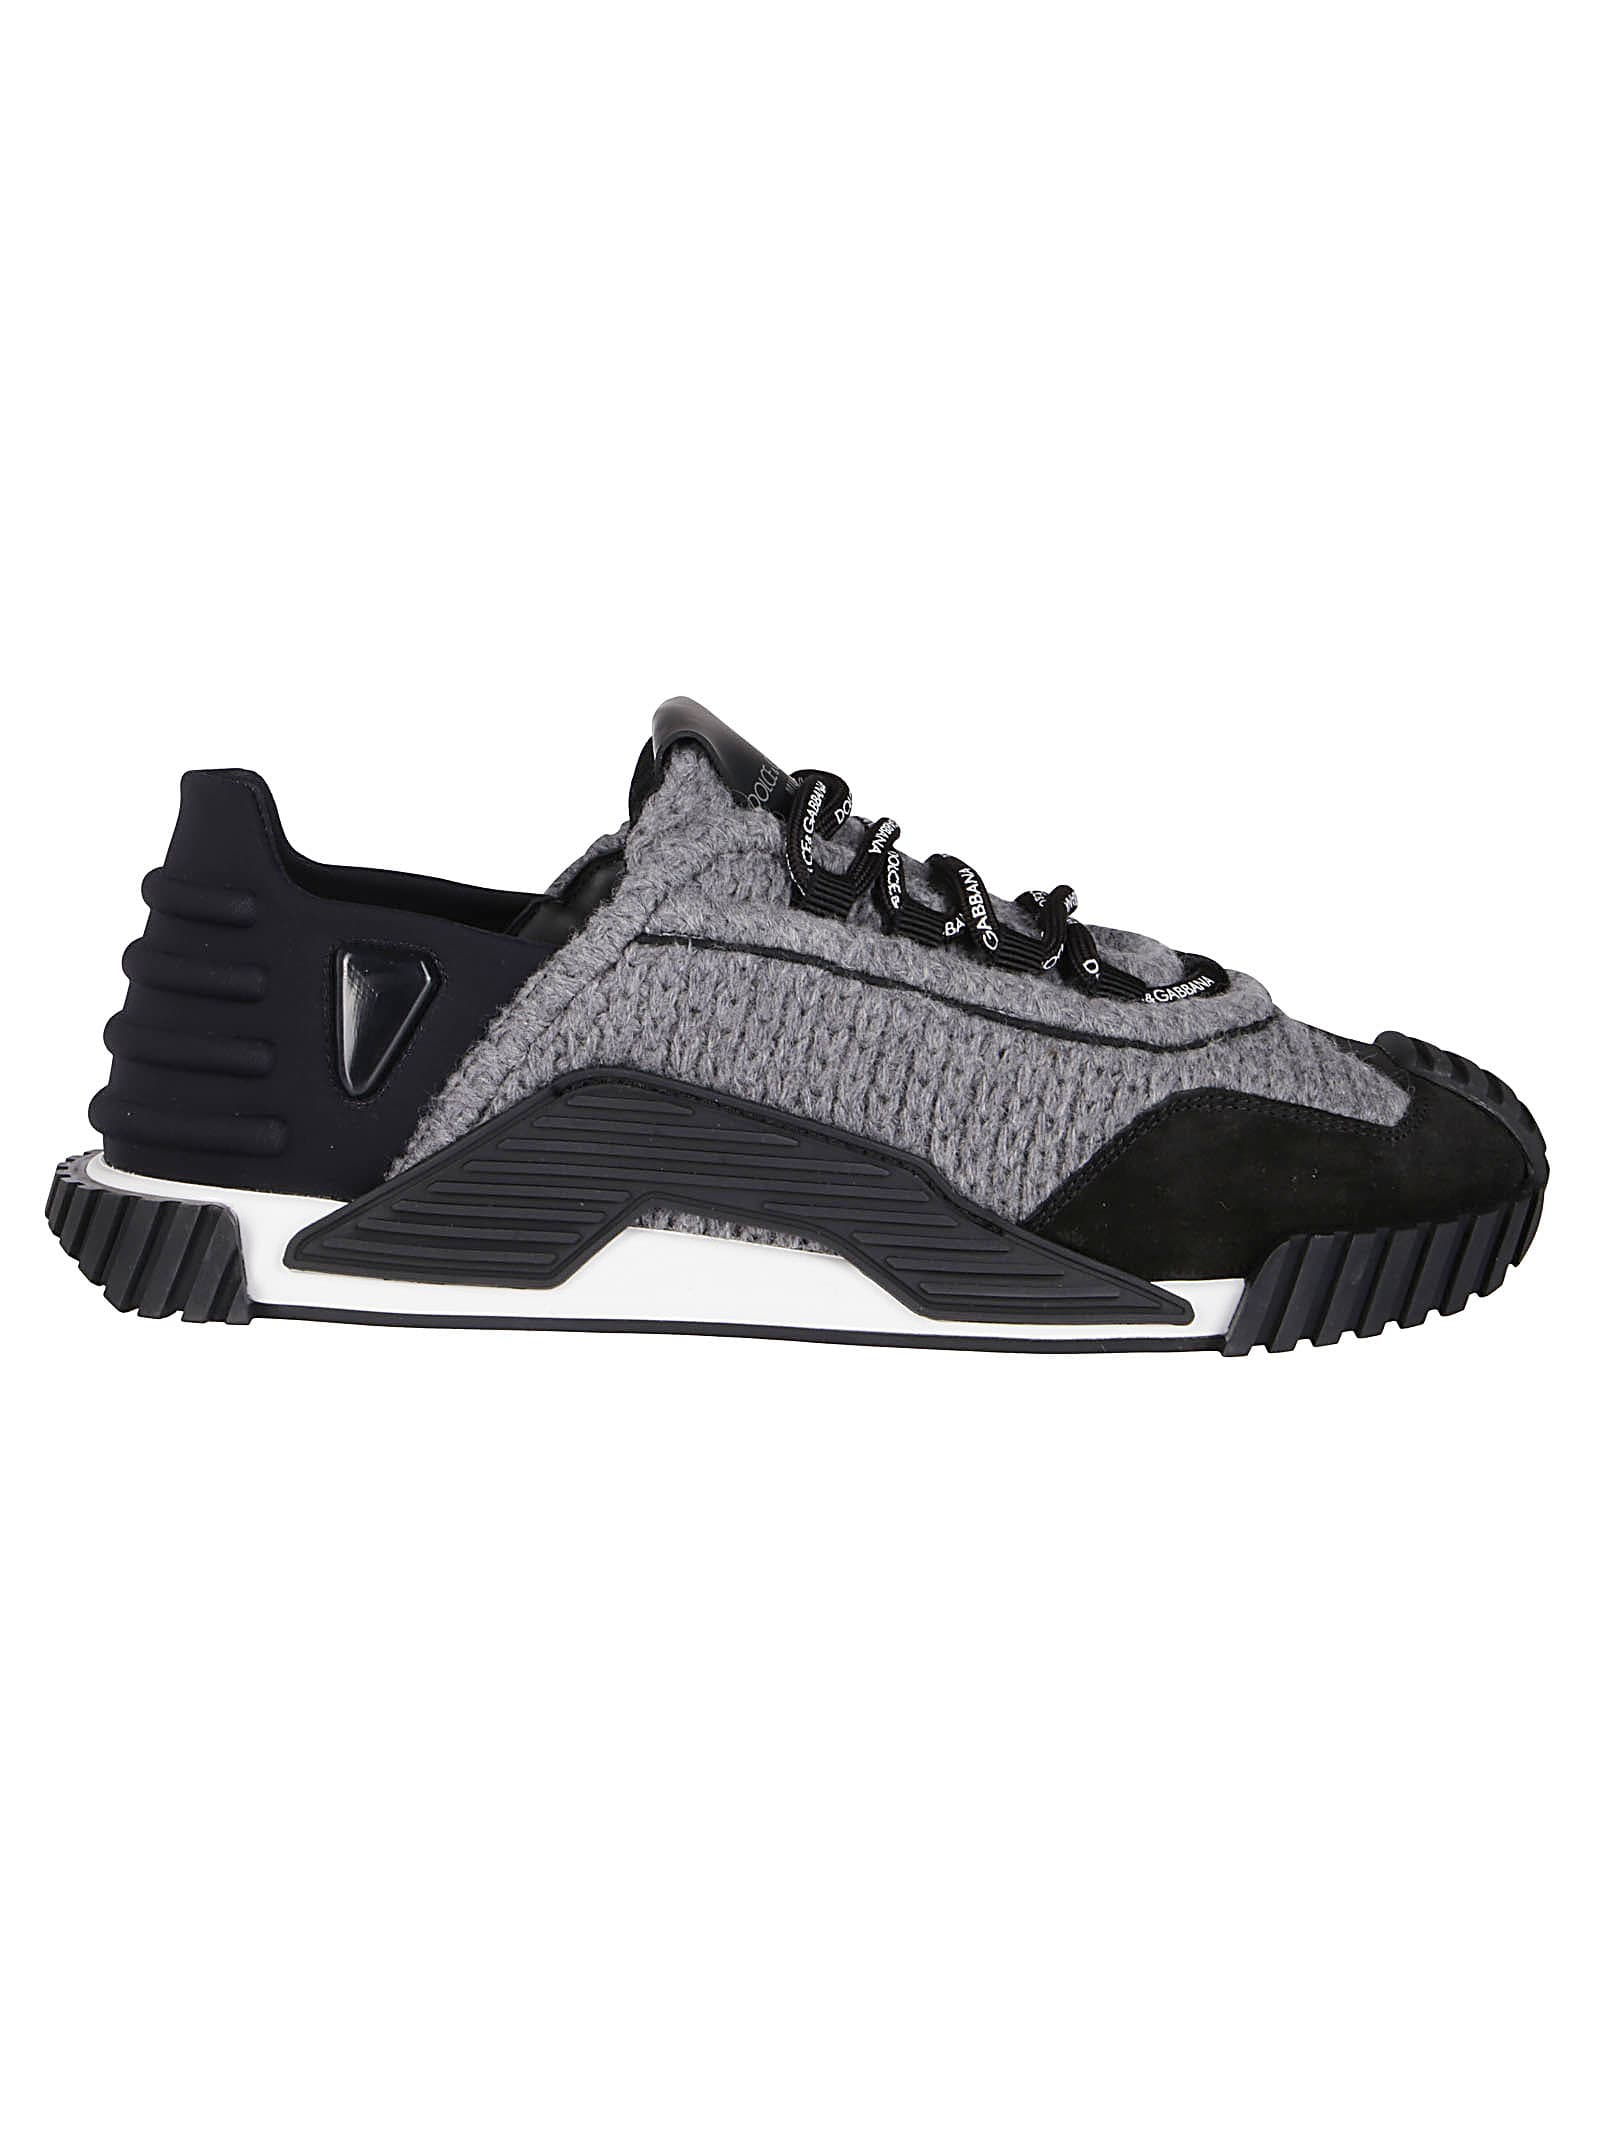 DOLCE & GABBANA BLACK LEATHER AND GREY KNITTED SNEAKERS